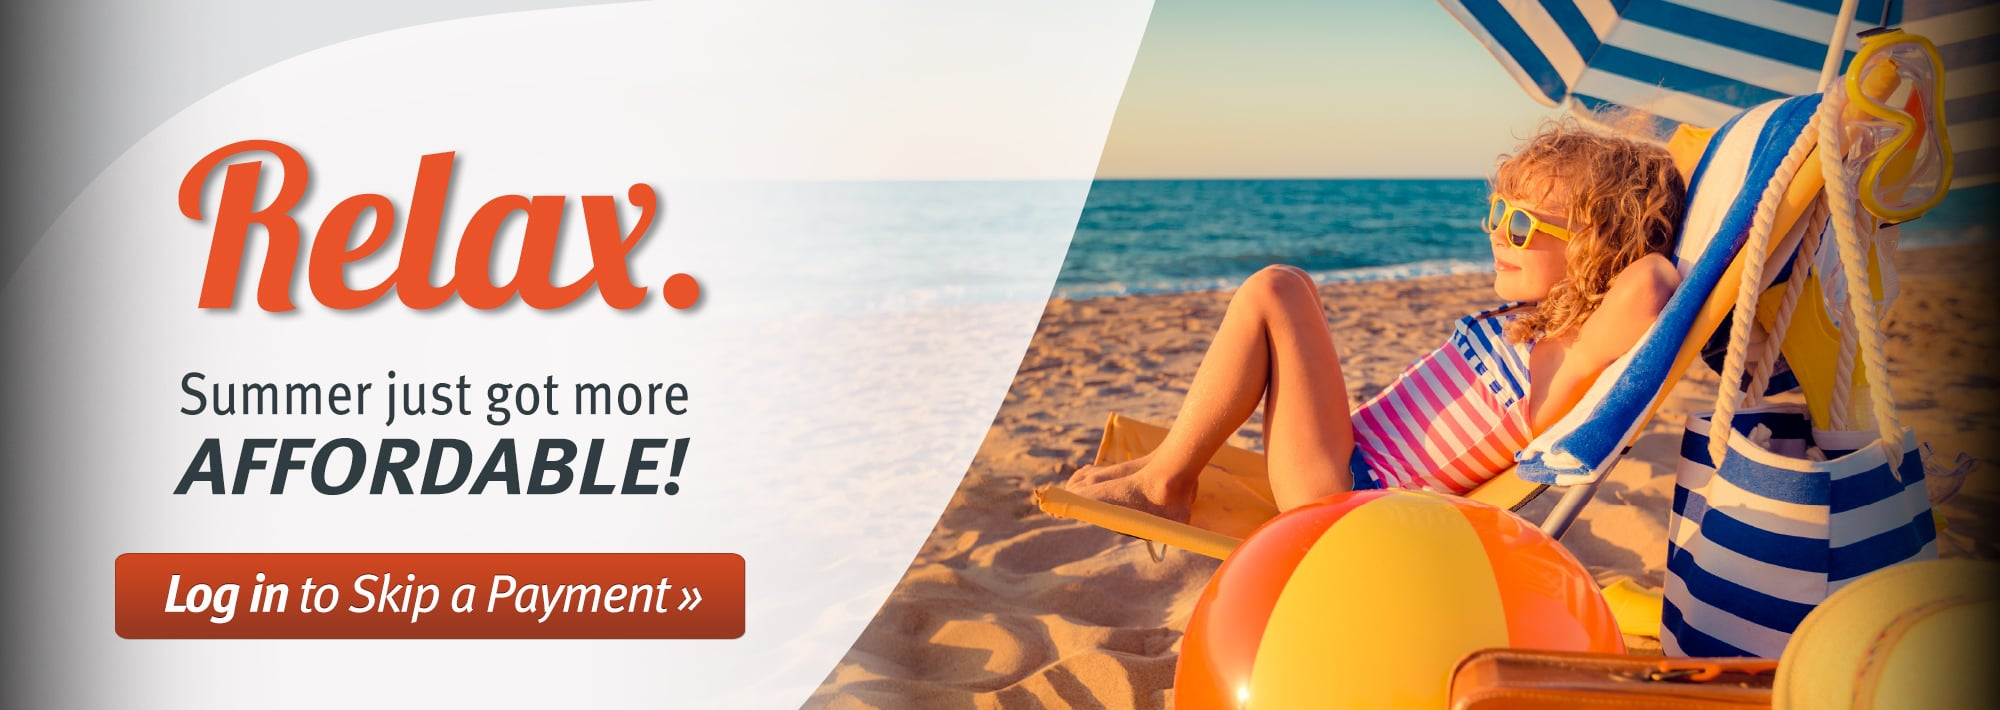 Relax. Summer just got more affordable. Log in to Skip a Payment!